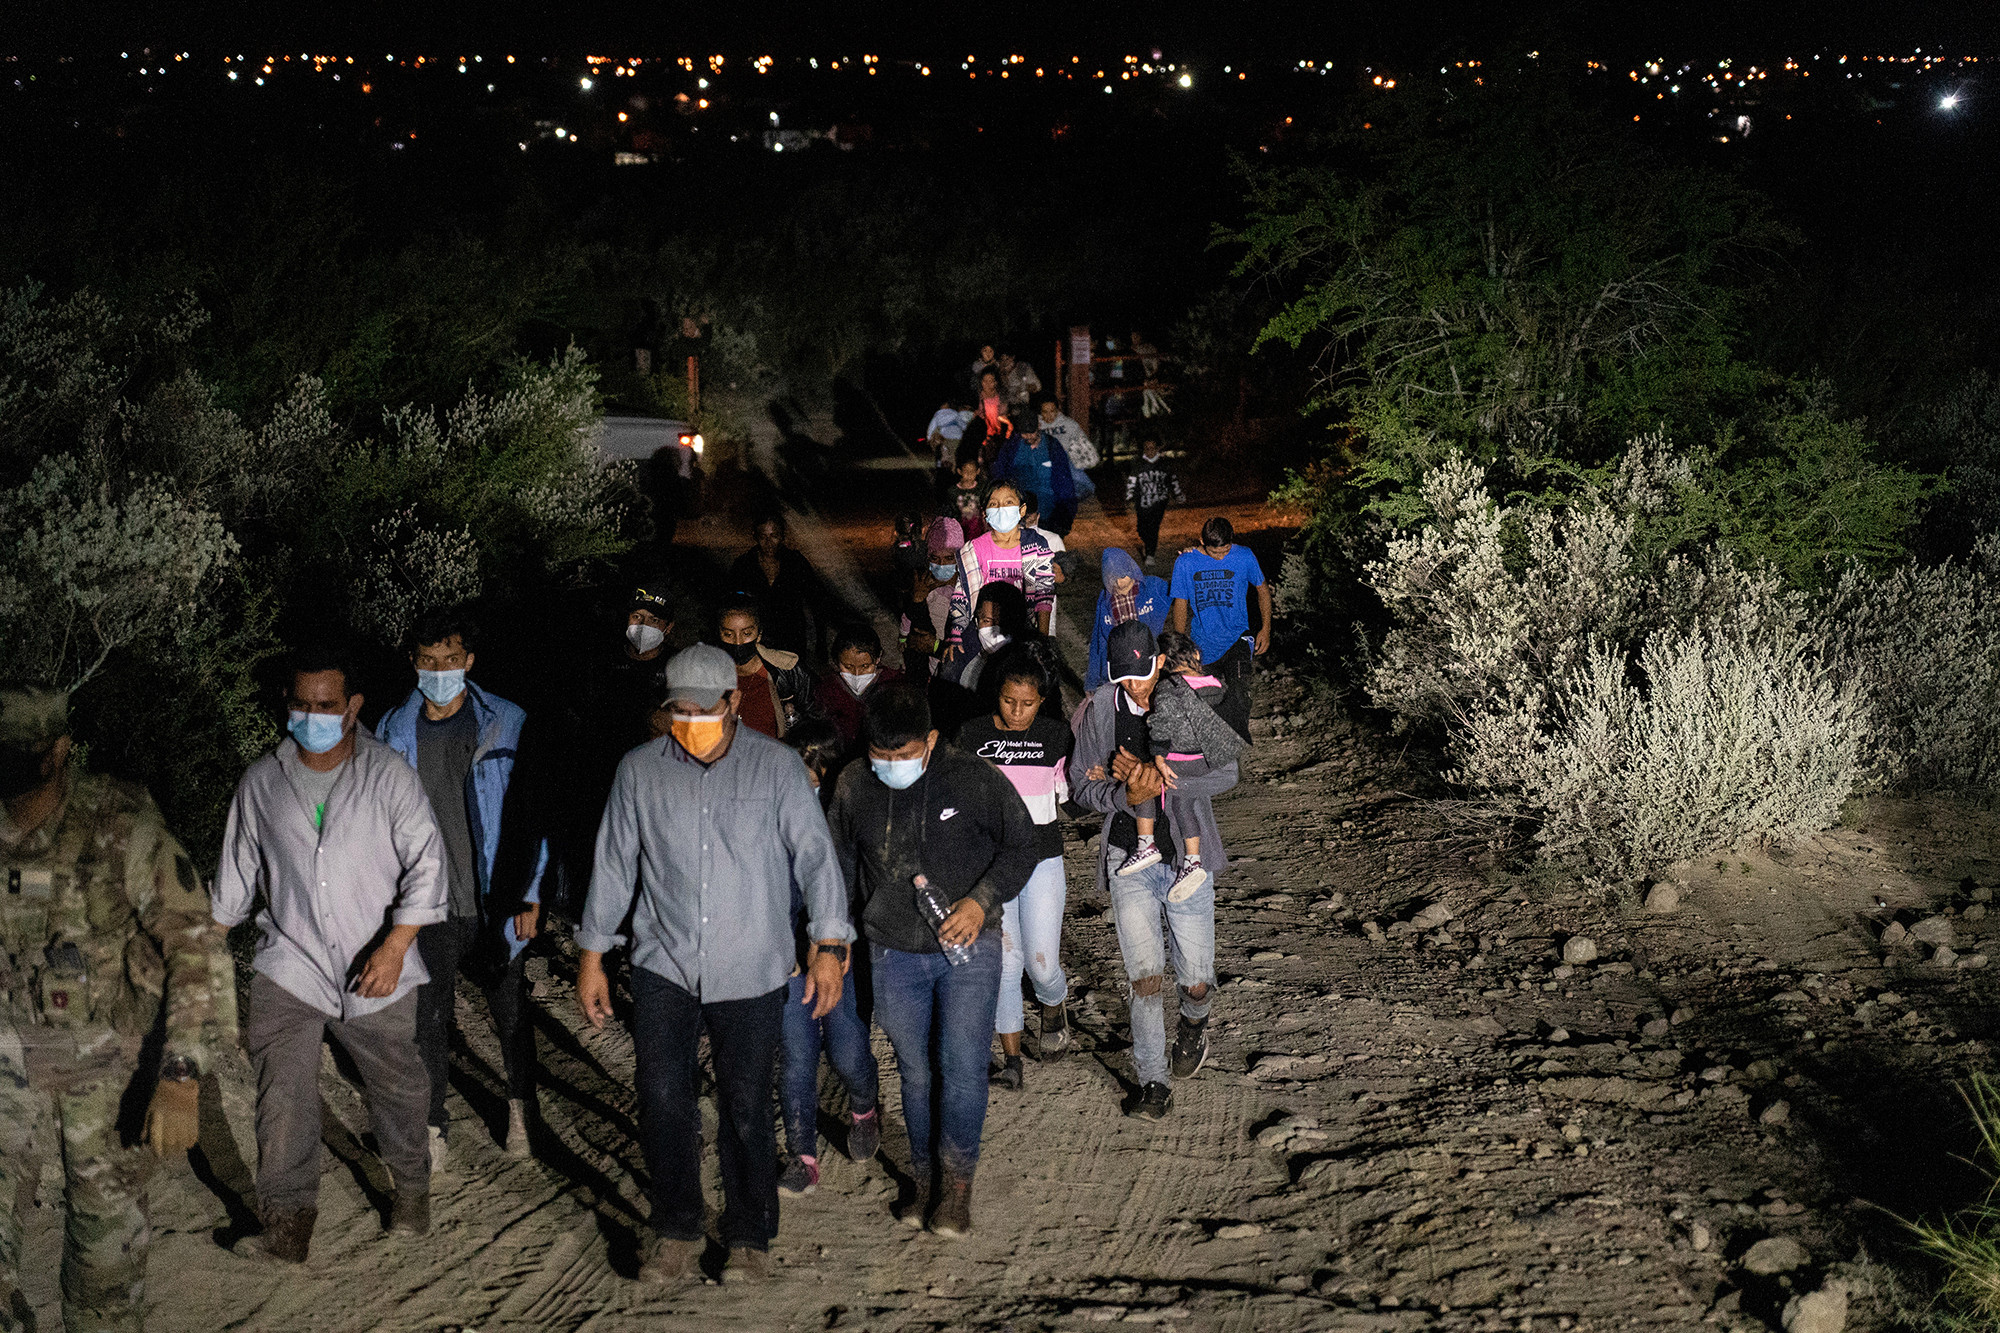 Migrant families are escorted by the US National Guard after crossing the Rio Grande river into the United States from Mexico on Aug. 14, 2021.